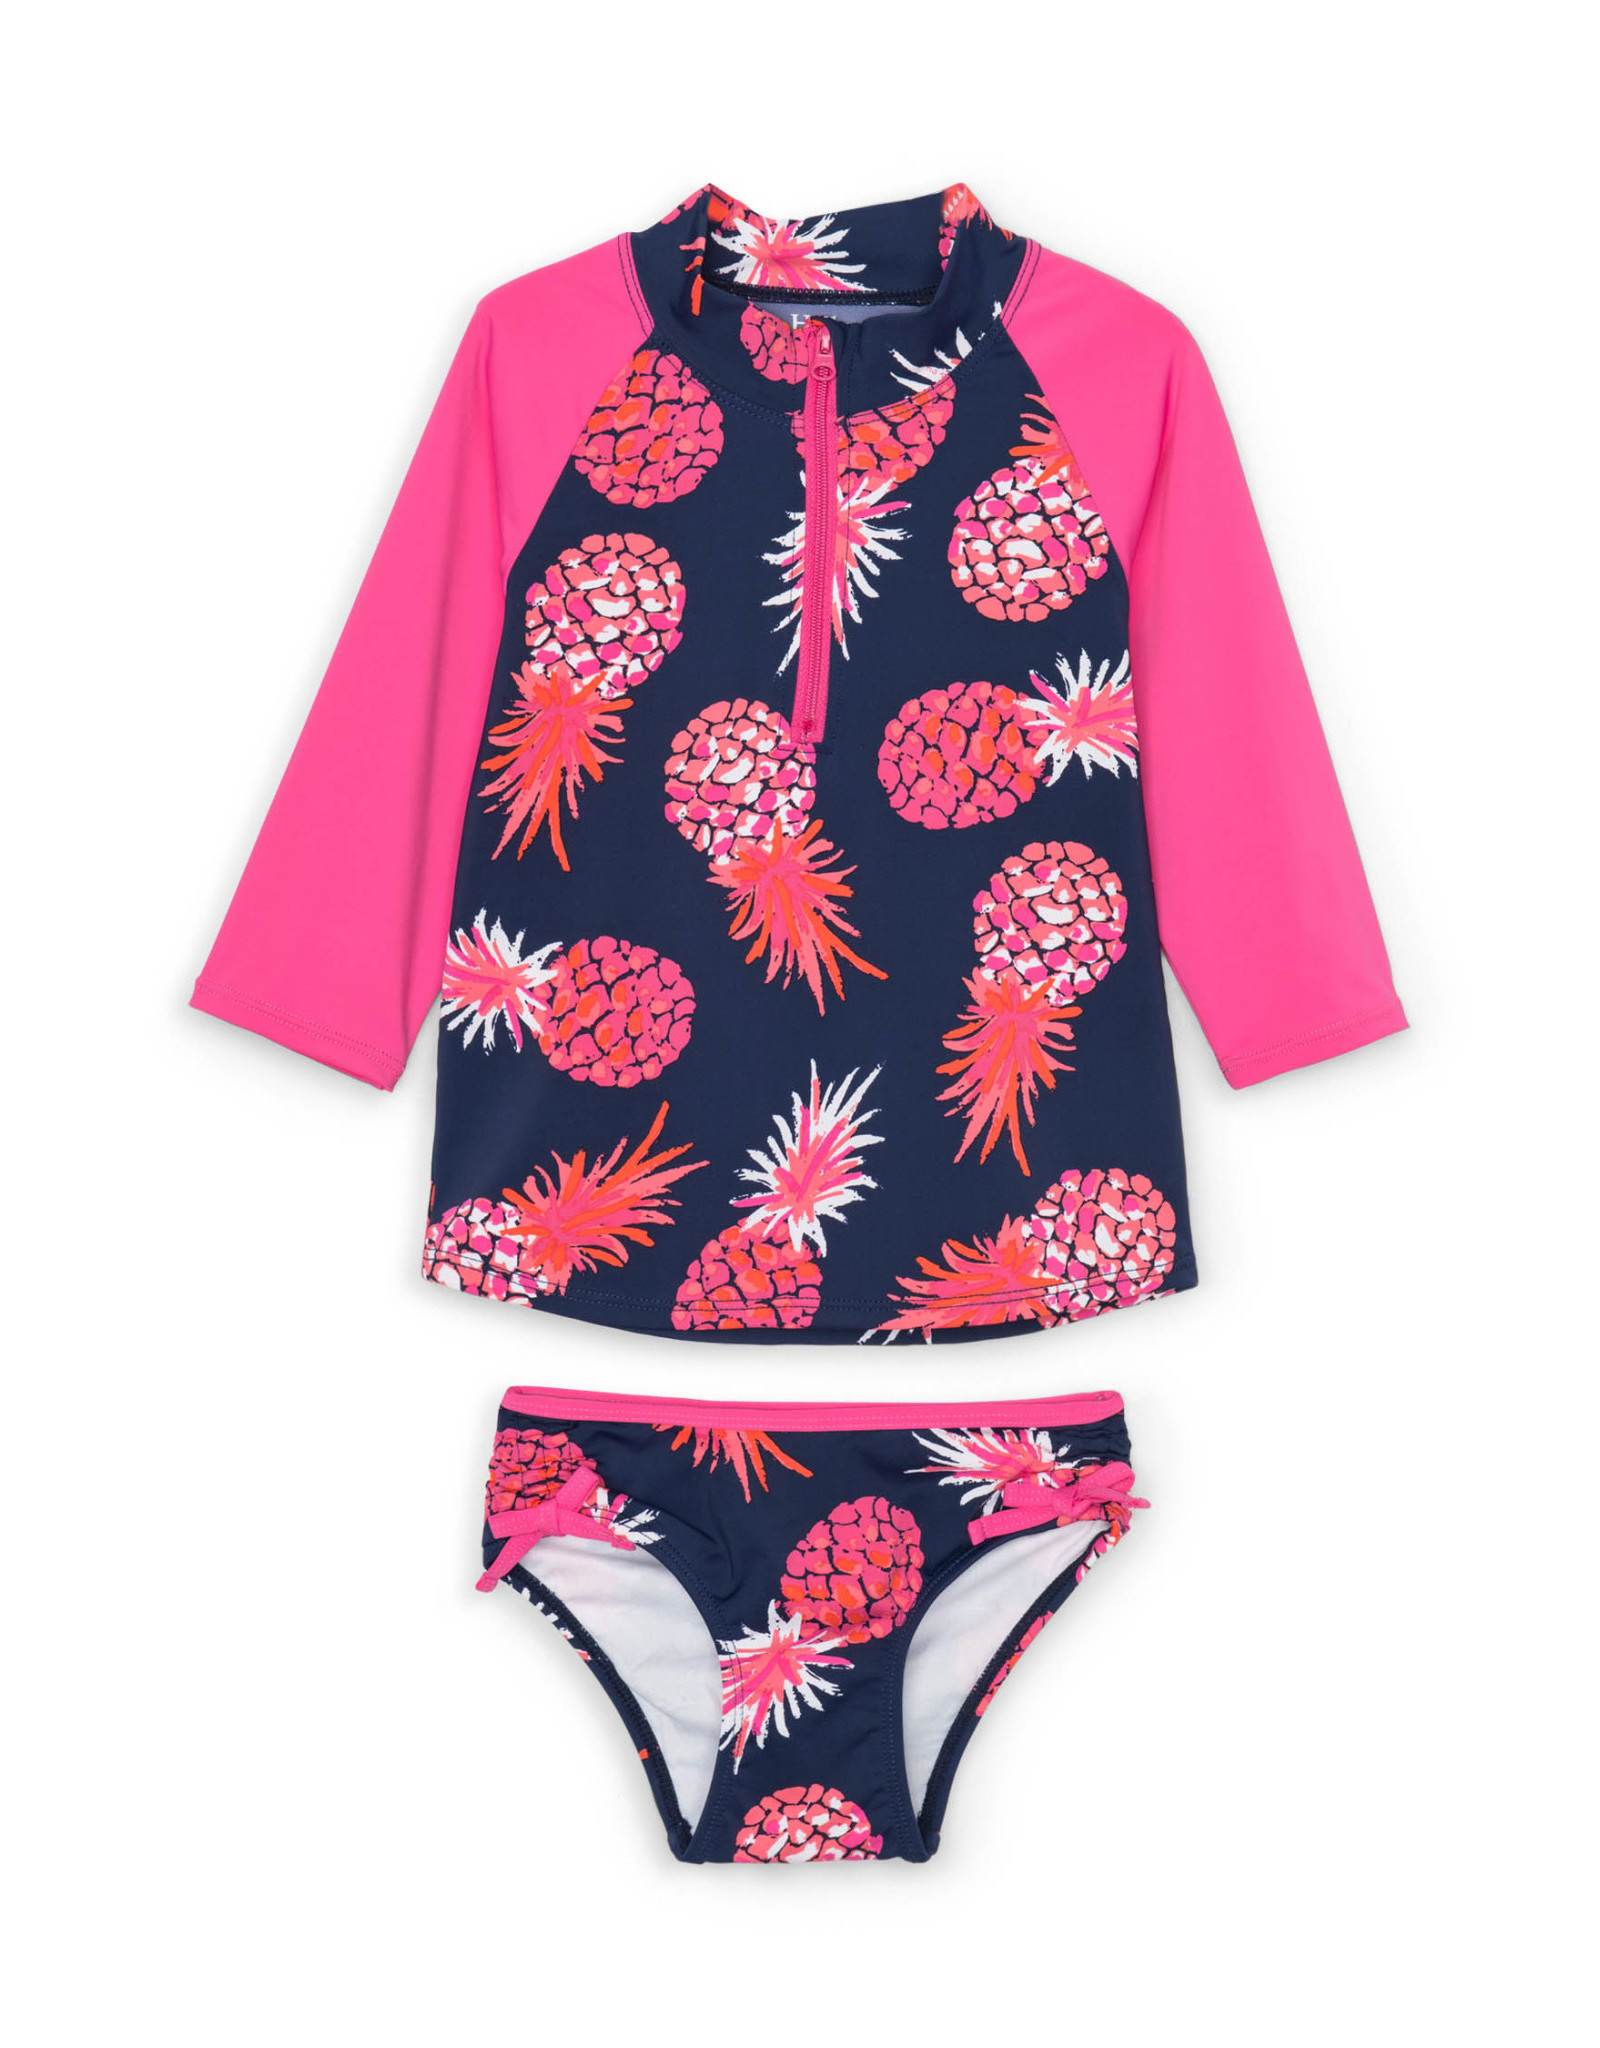 LITTLE BLUE HOUSE (HATLEY) RASHGUARD SET